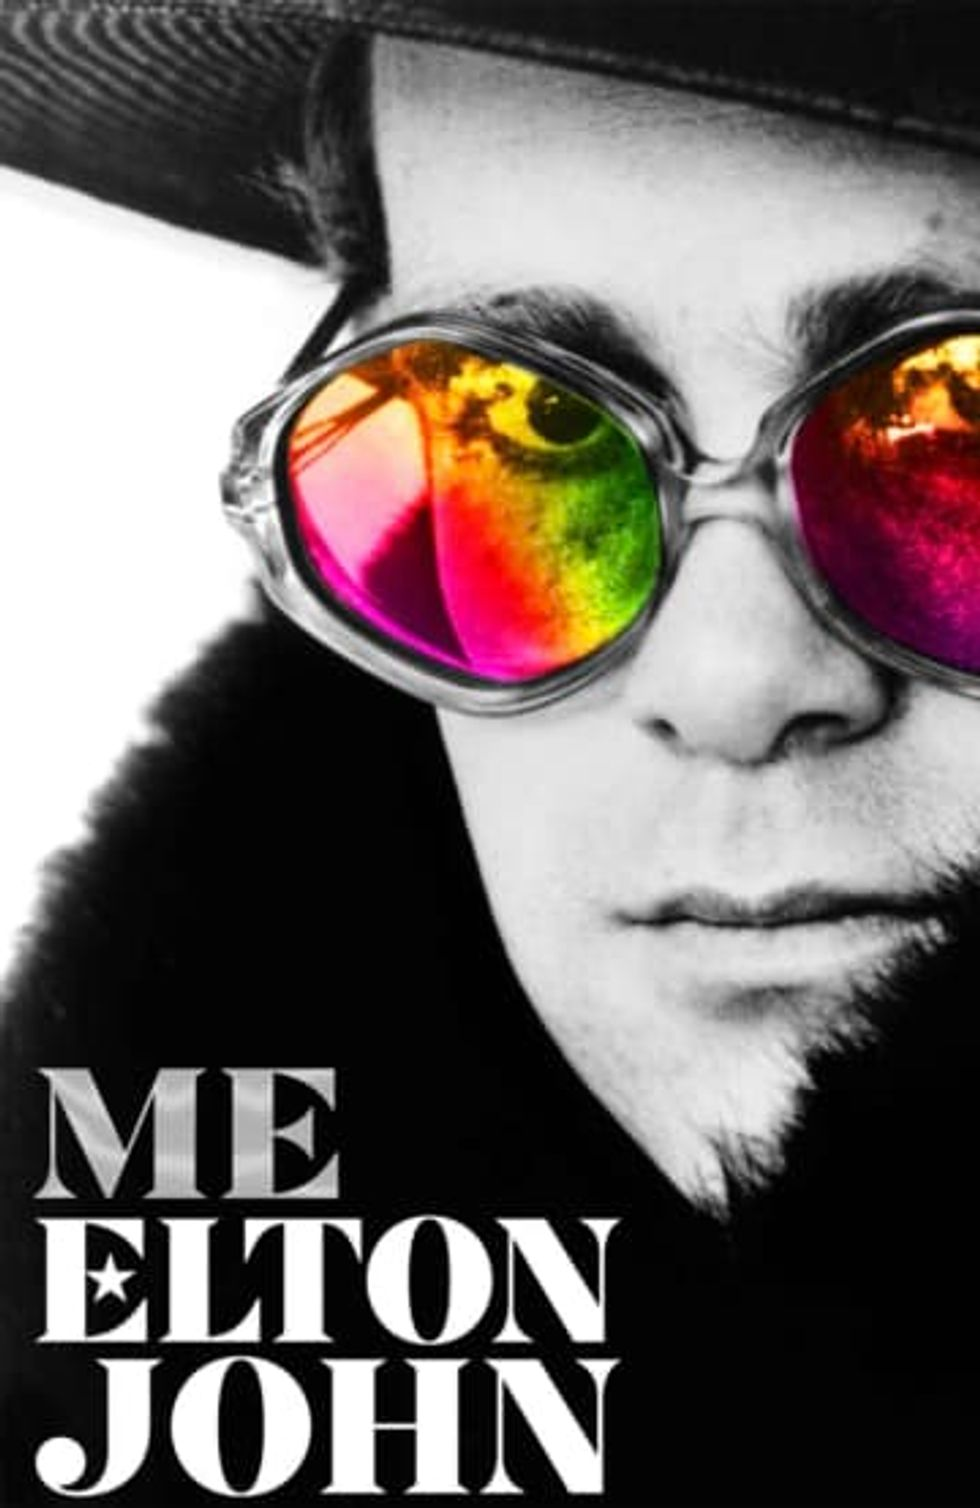 From Elton John's nappies to Morris Day bickering with Prince: Why I love music memoirs